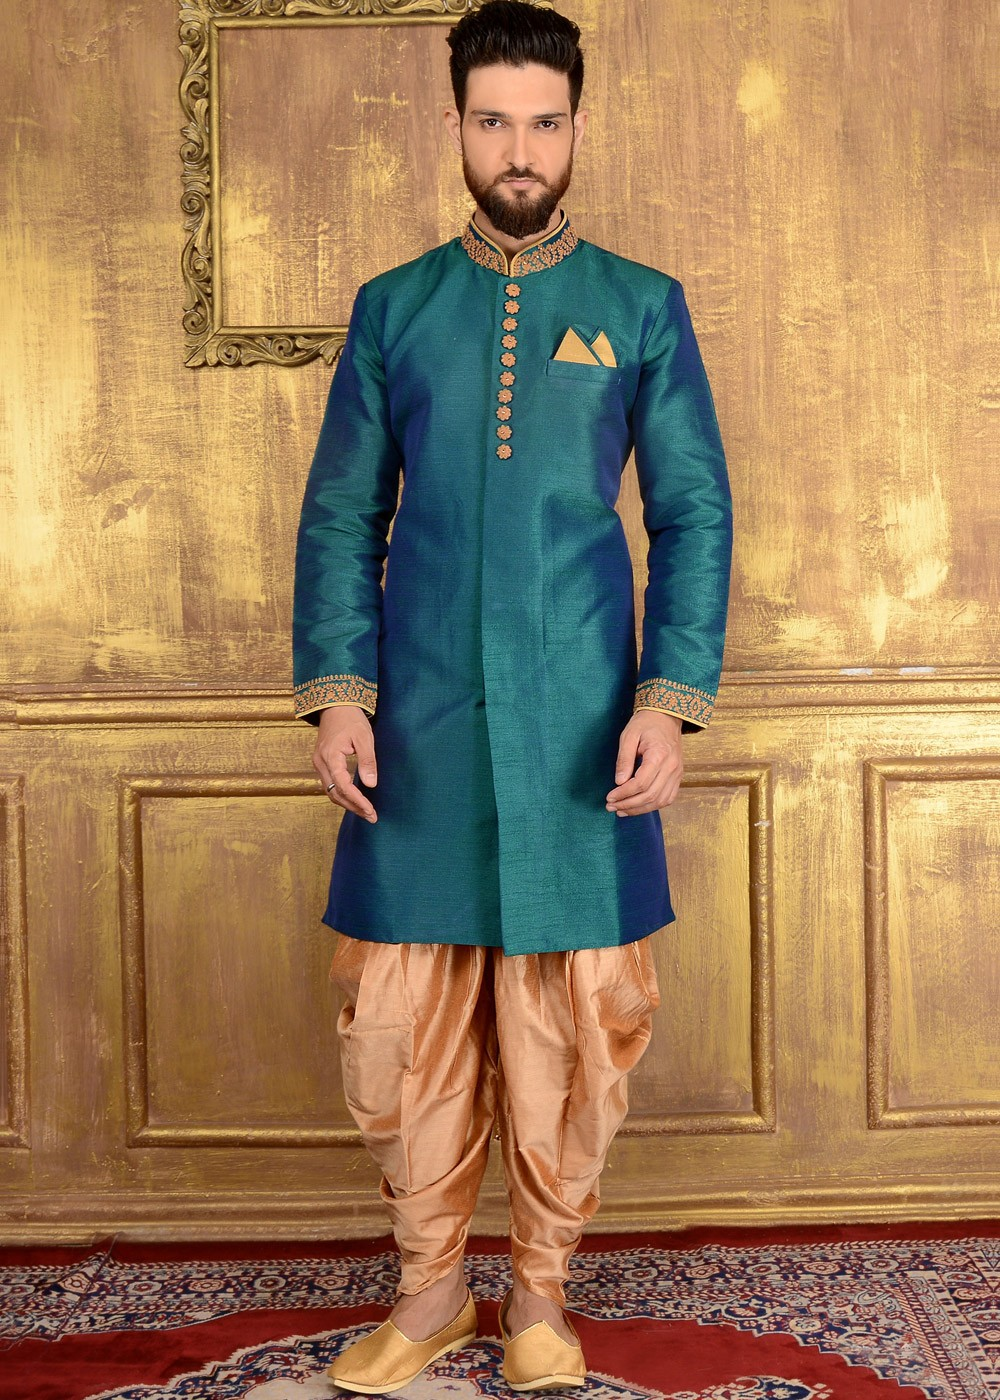 535aab1ab655 Indian Wedding Clothes for Men: Buy Teal Blue Art Silk Mens Wedding  Sherwani Online in Readymade ...